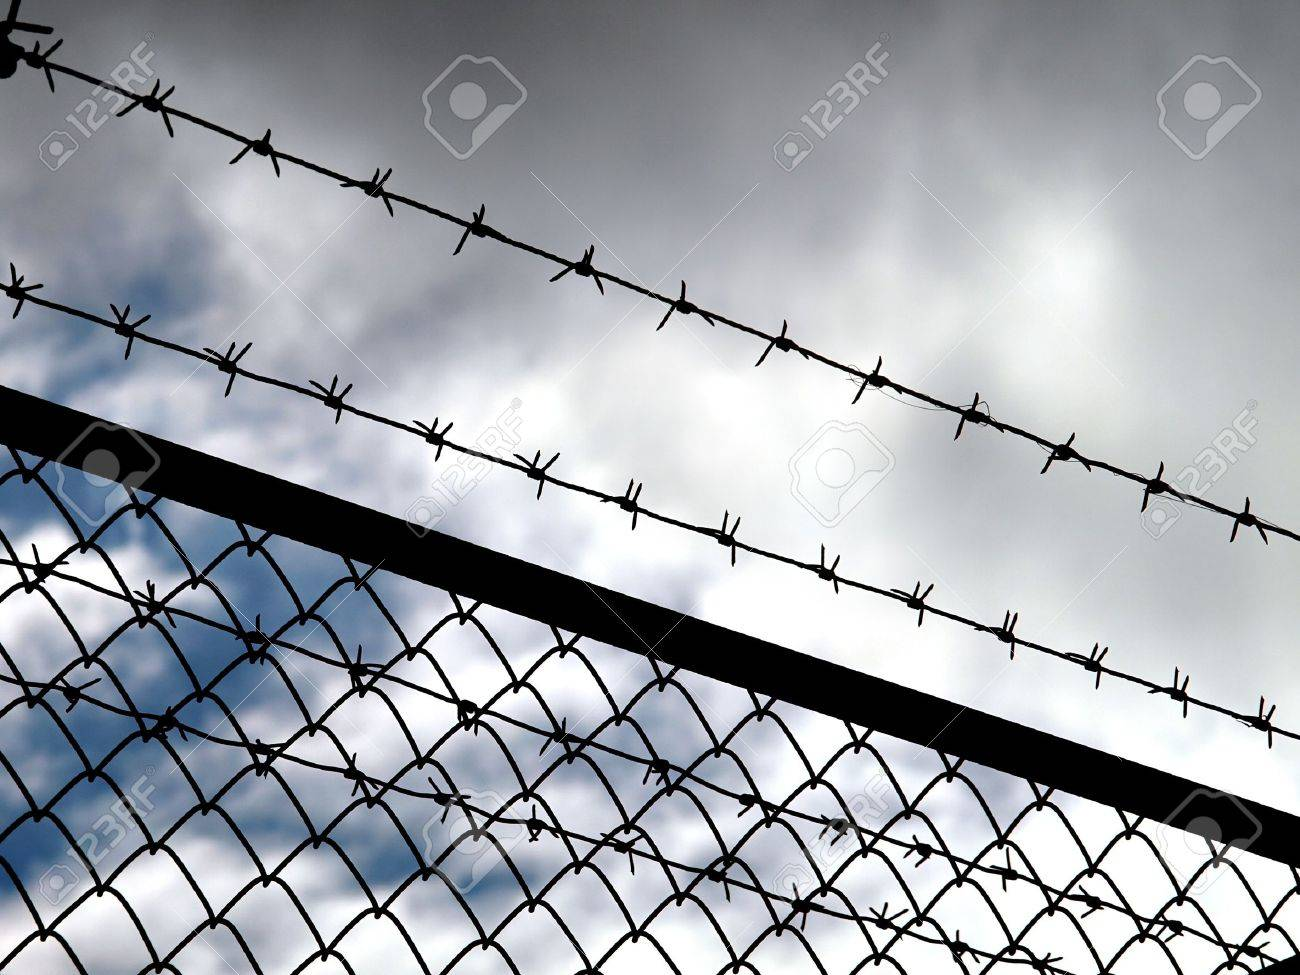 Barbed wire fence with dark clouds in background - imprisonment concept Stock Photo - 4754286